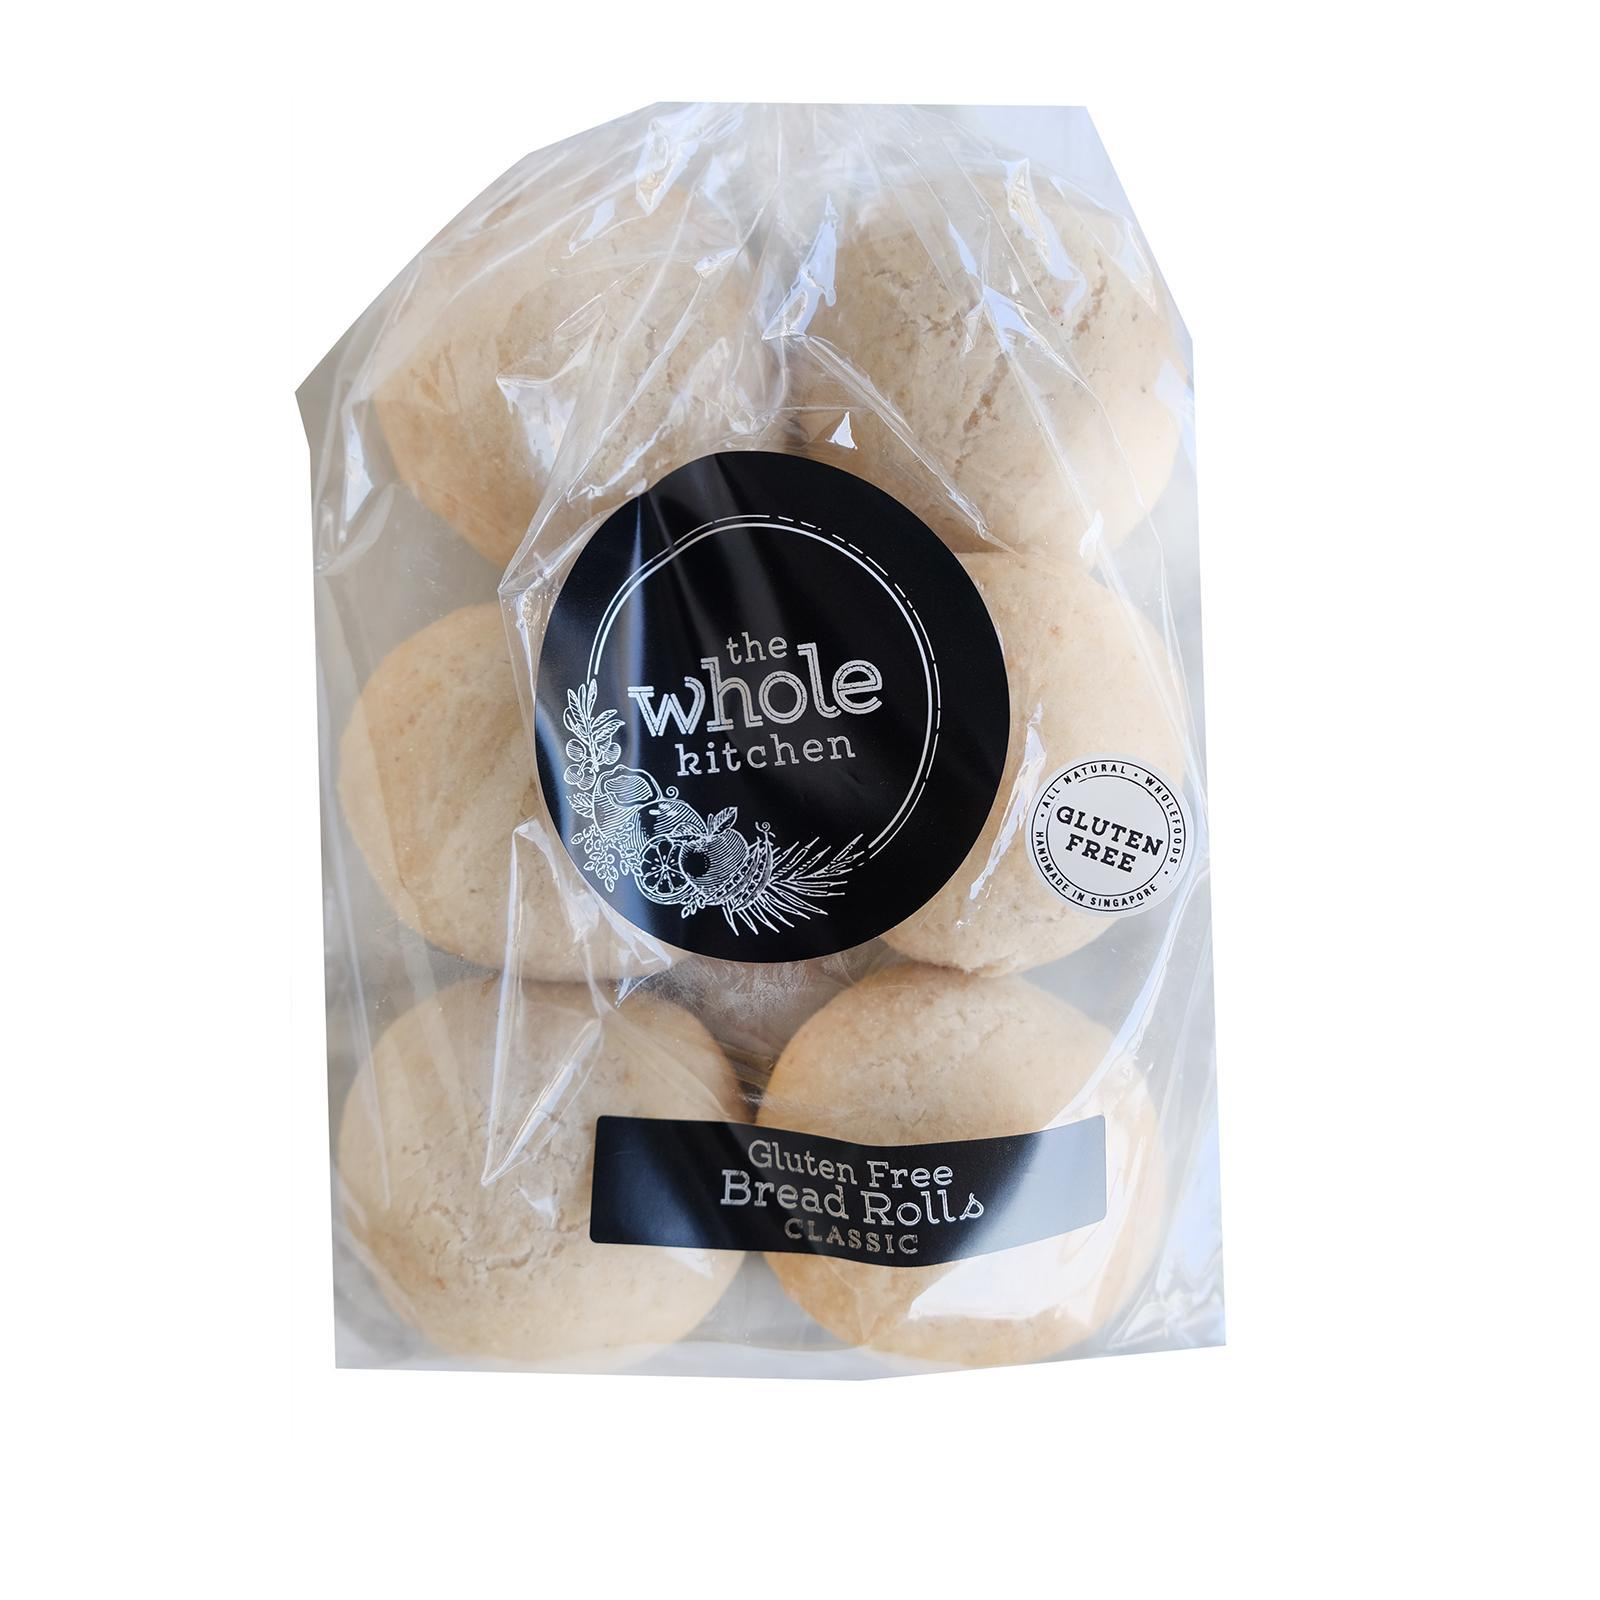 The Whole Kitchen Gluten Free Bread Rolls - Classic - Frozen